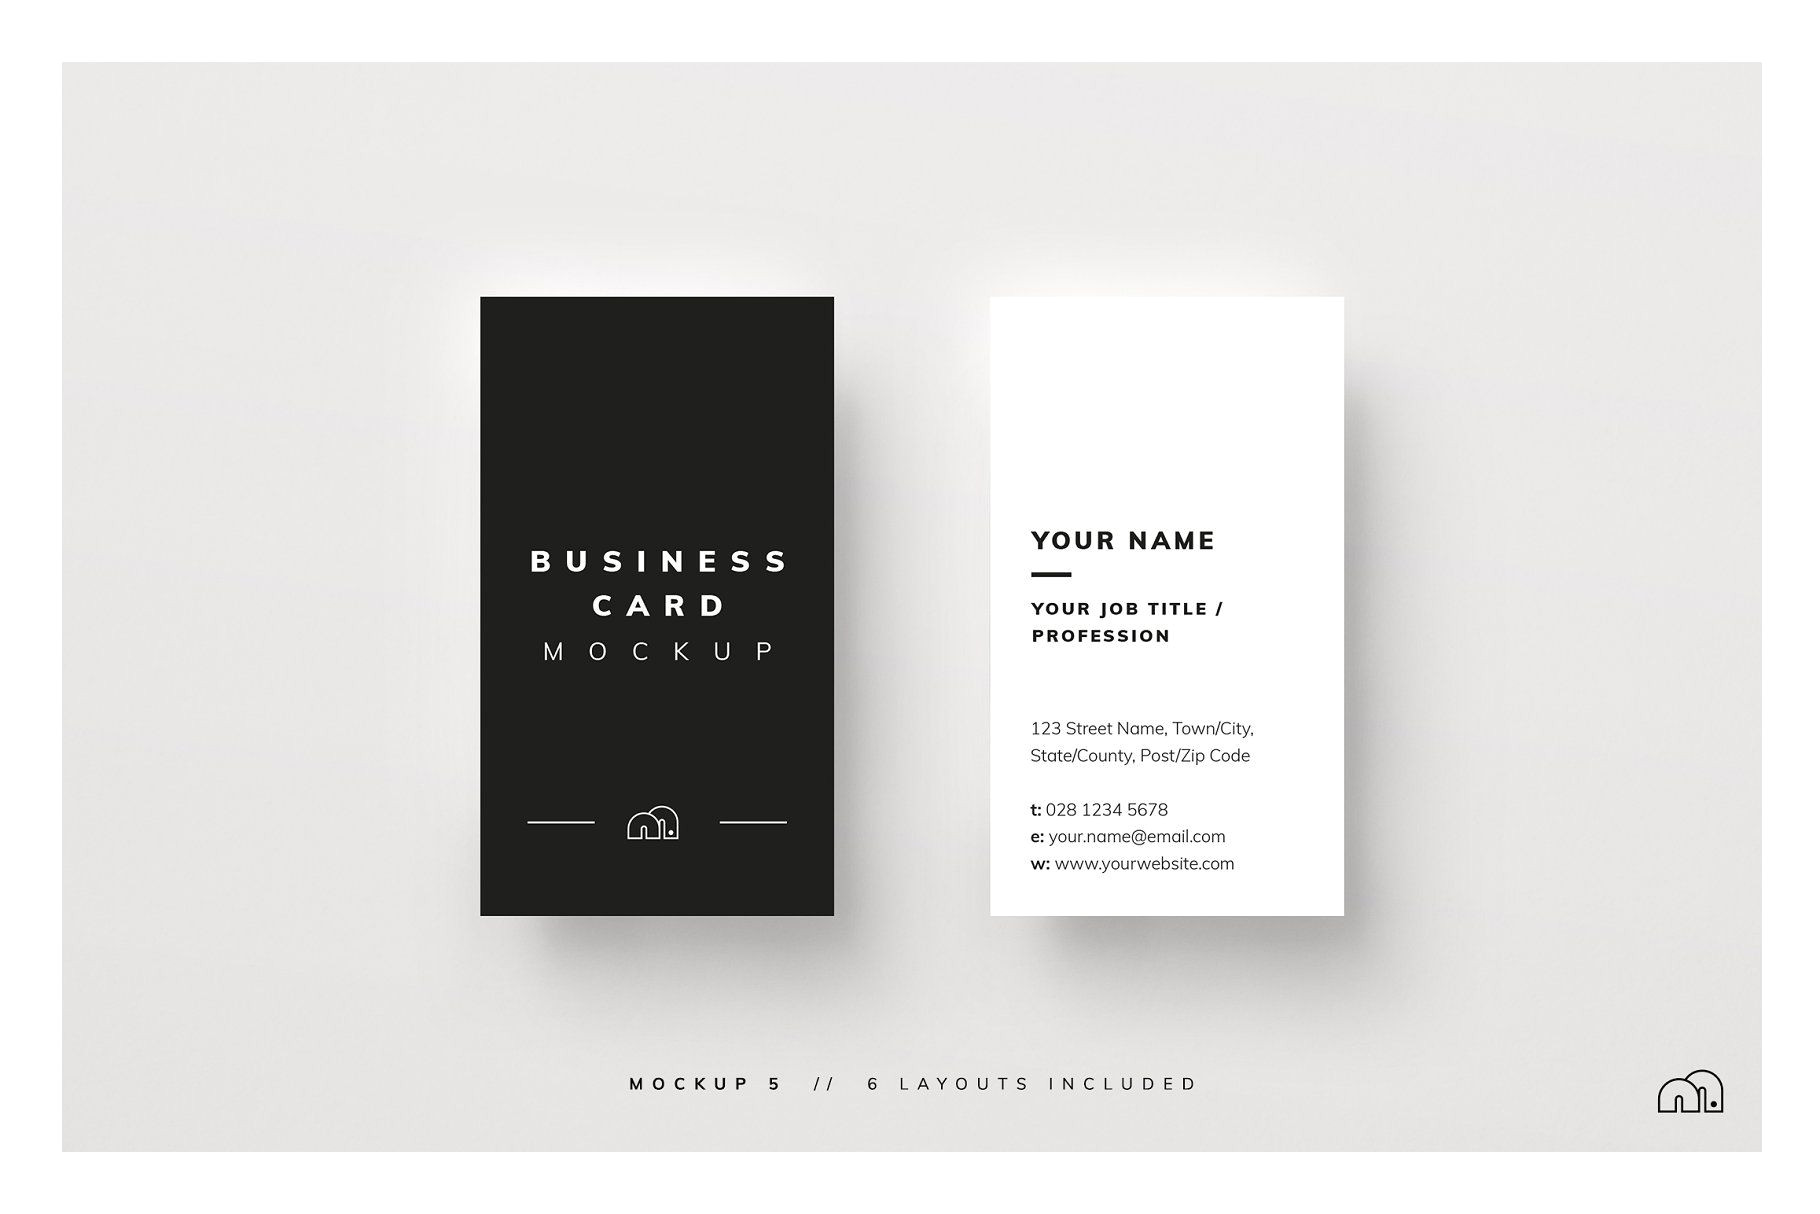 Creative Job Title for Business Card Business Card Mockup Card Business Mockup Mockups with